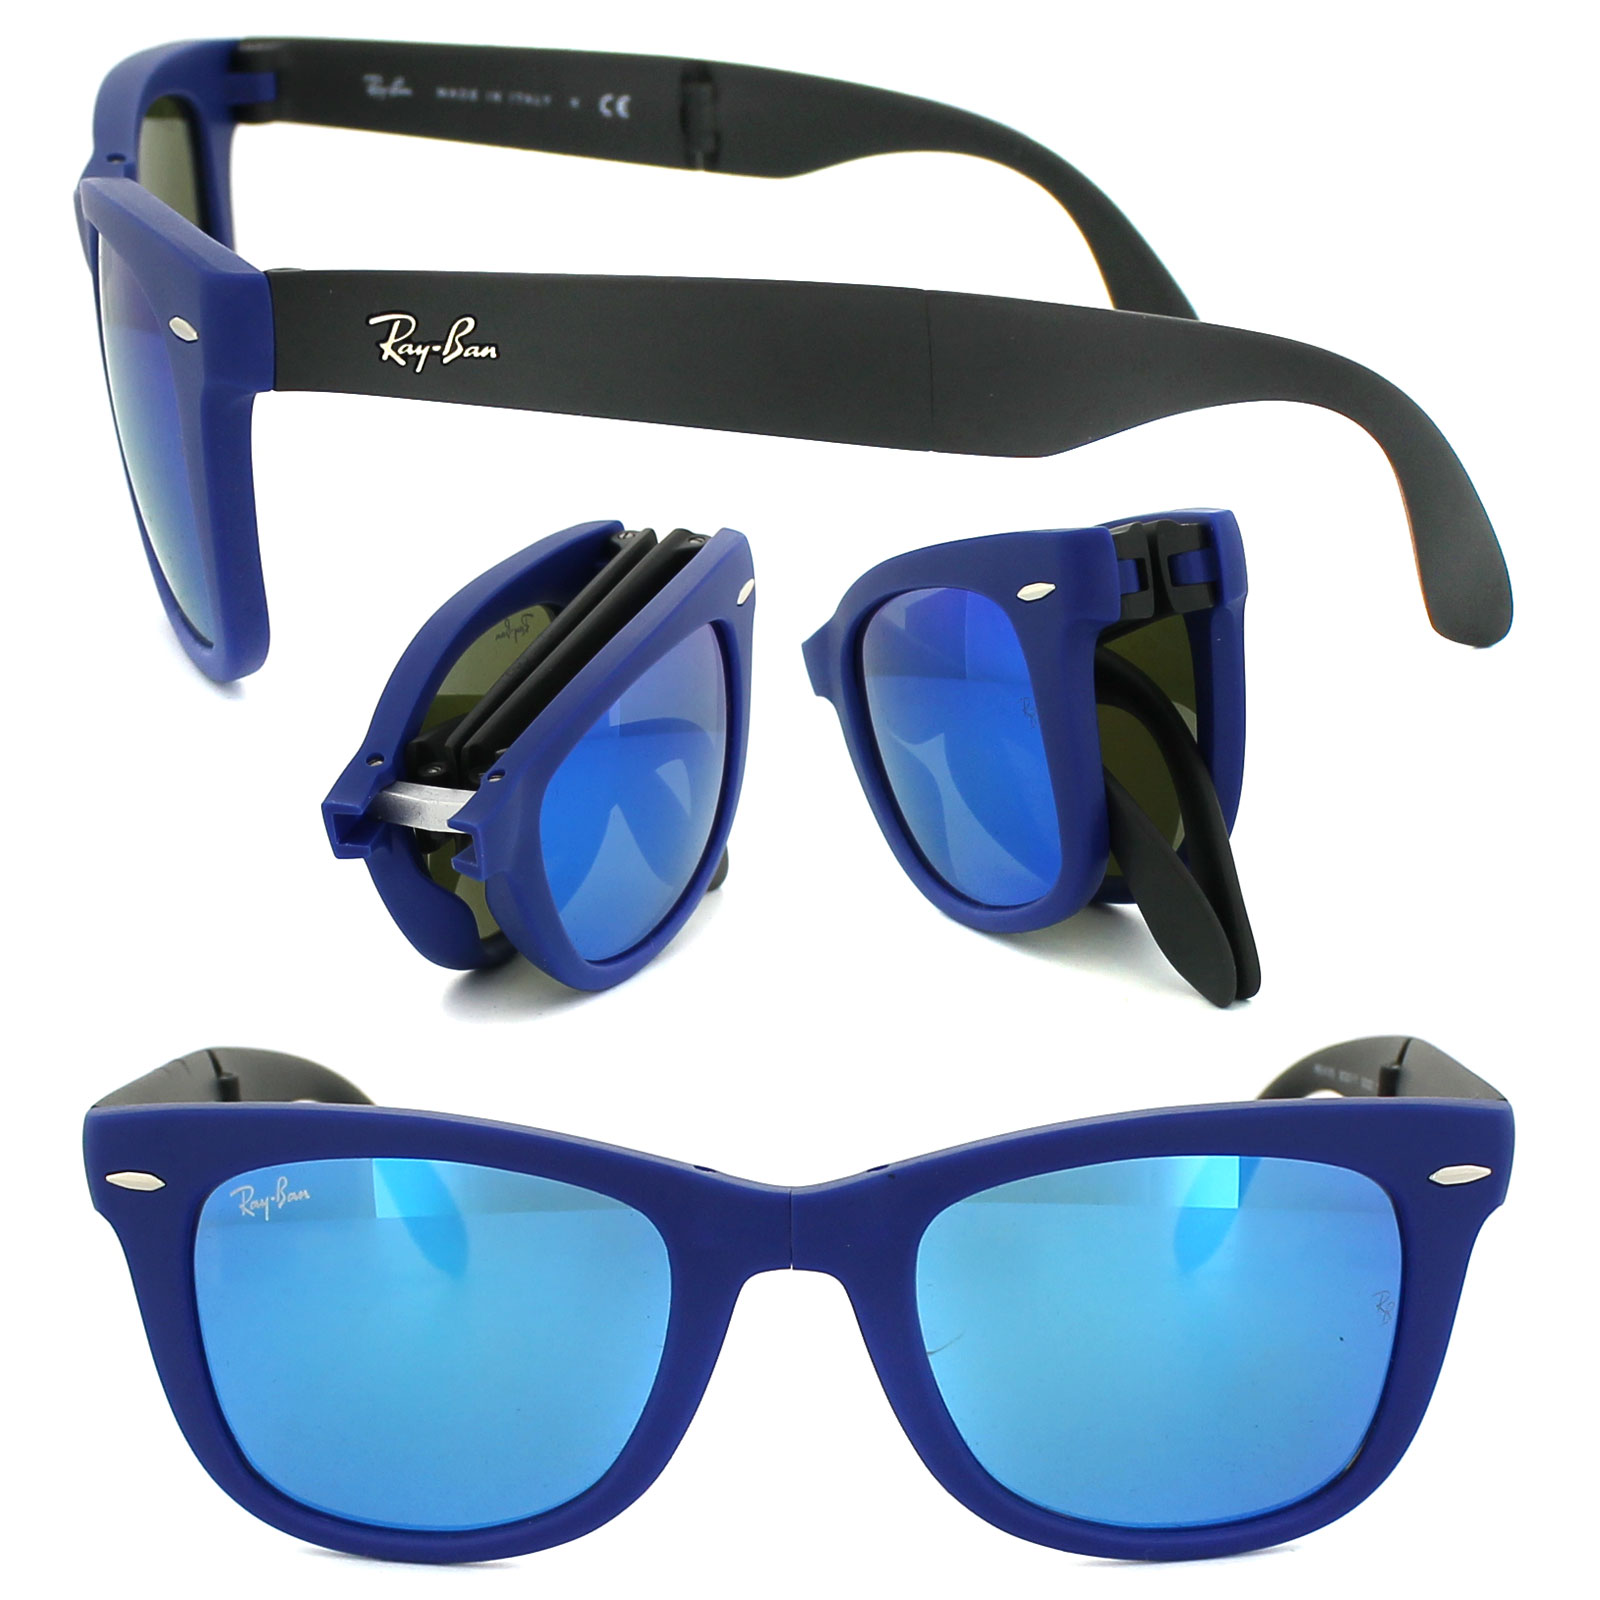 f8ff79bba2 Sentinel Ray-Ban Sunglasses Folding Wayfarer 4105 602017 Matt Blue   Grey  Blue Mirror M